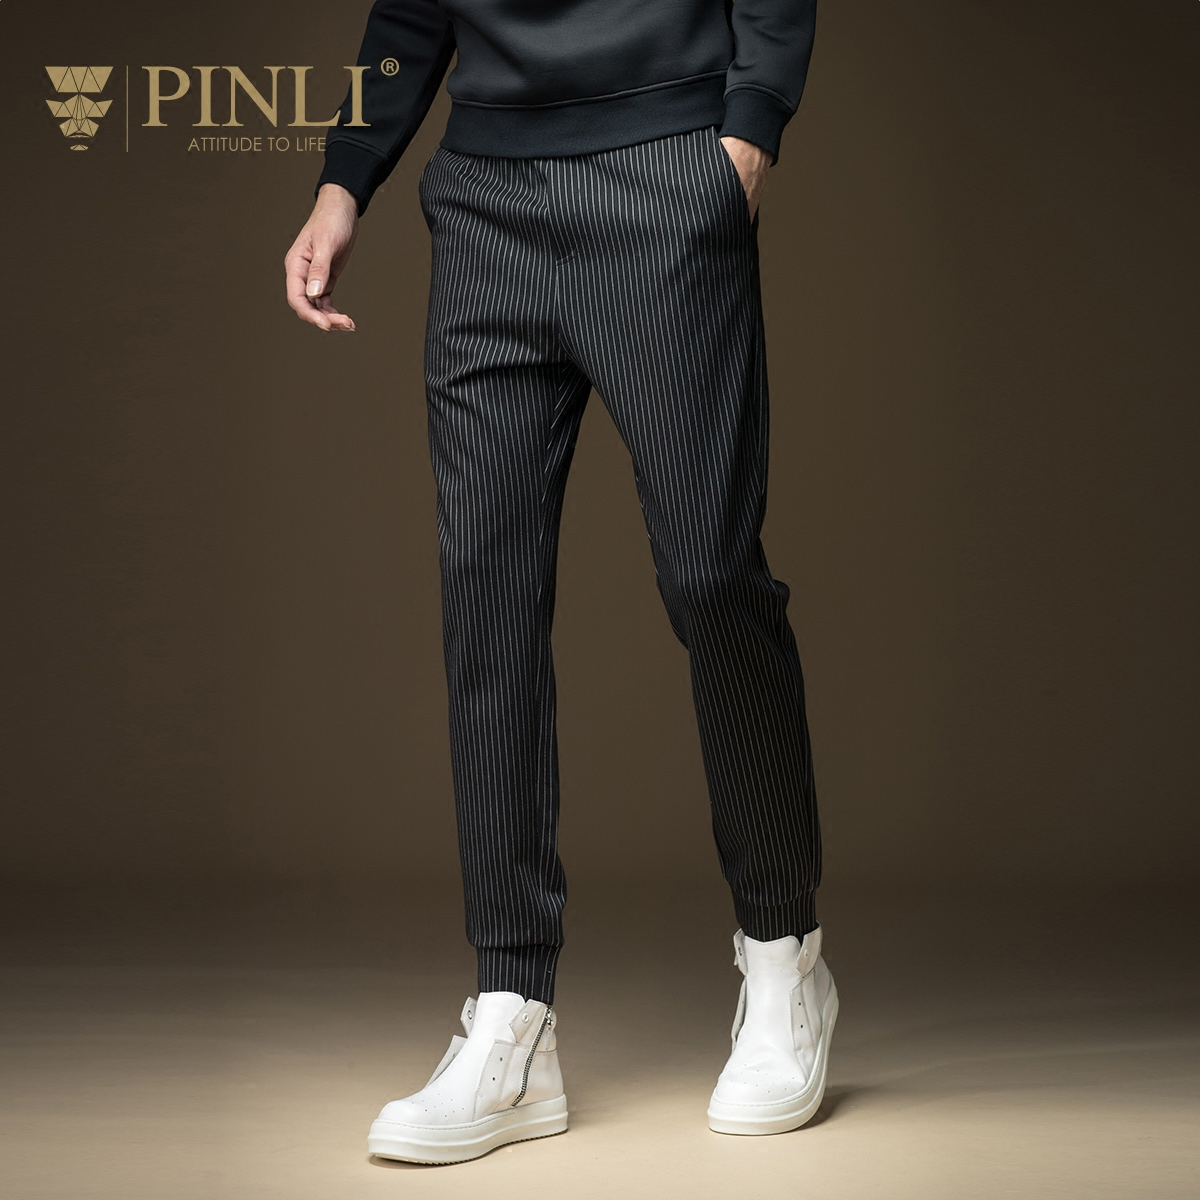 Pinli New Arrival Sale Loose Bamboo Fiber Mid 2016 Winter Men's Casual Pants Striped Trousers Feet Upon The B16315811